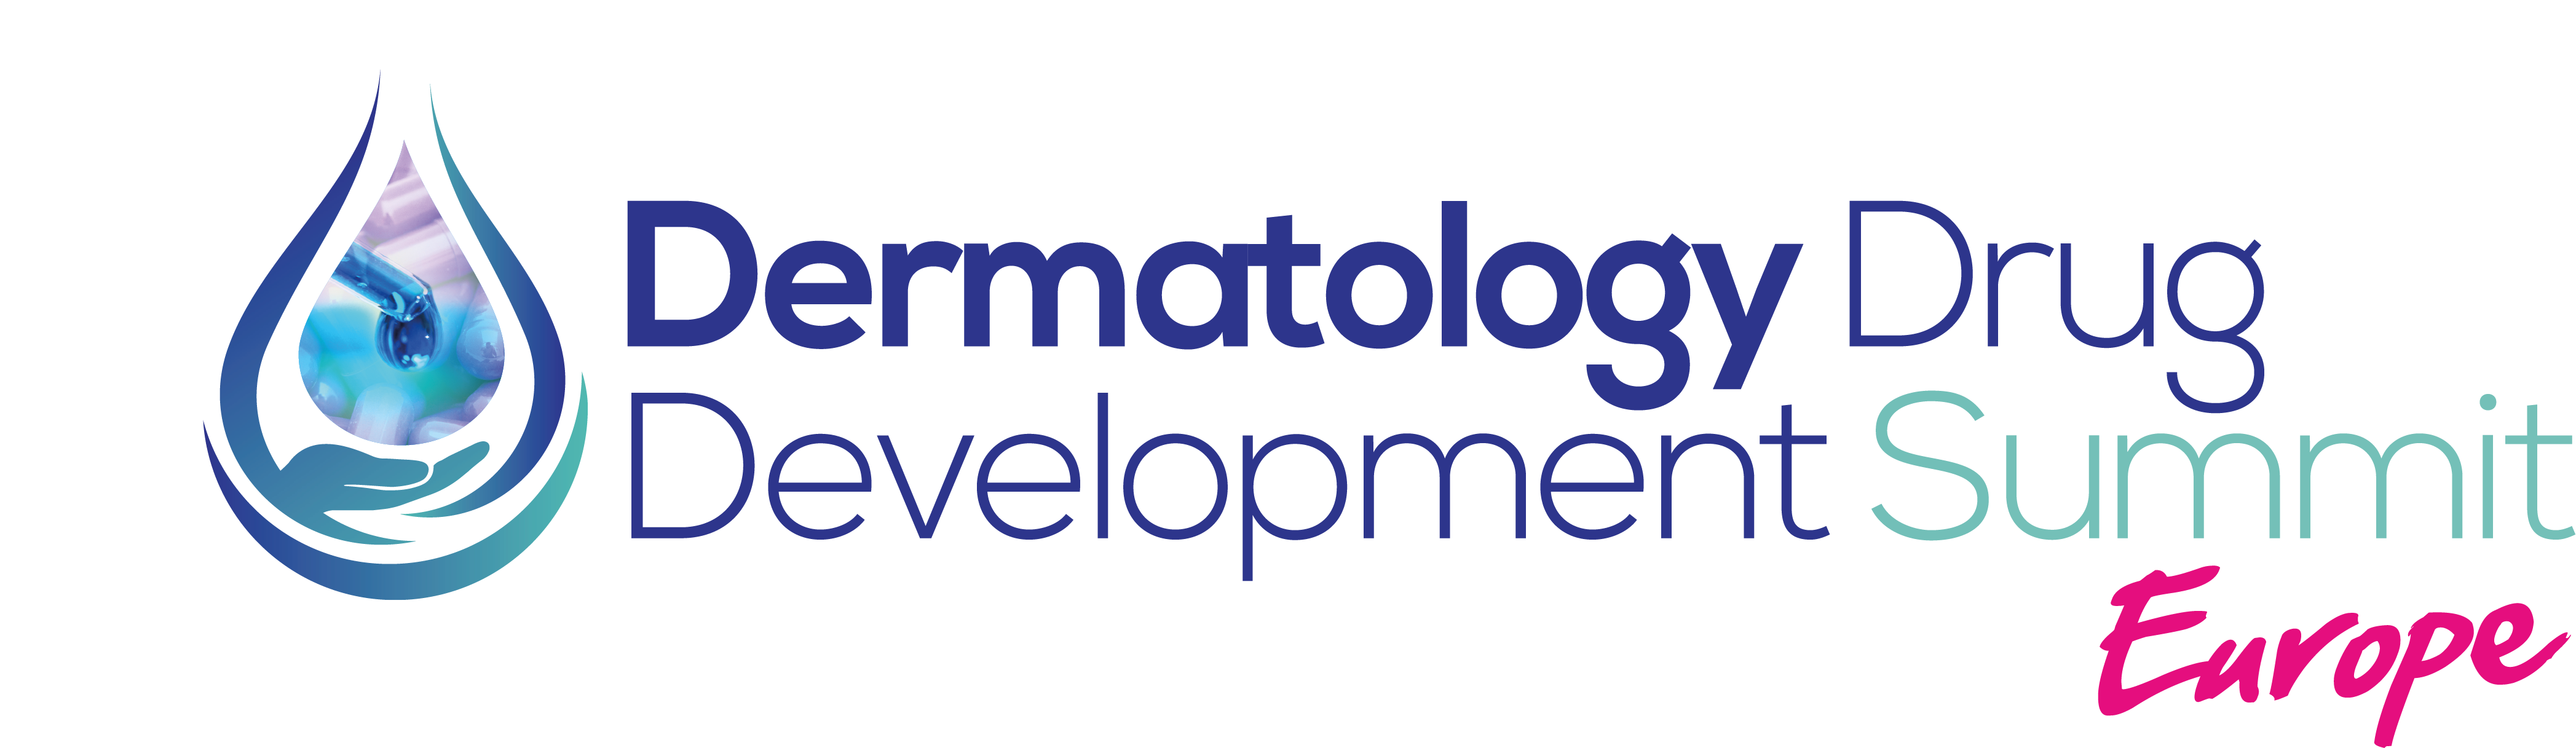 HW190107 Dermatology Drug Development Europe Logo